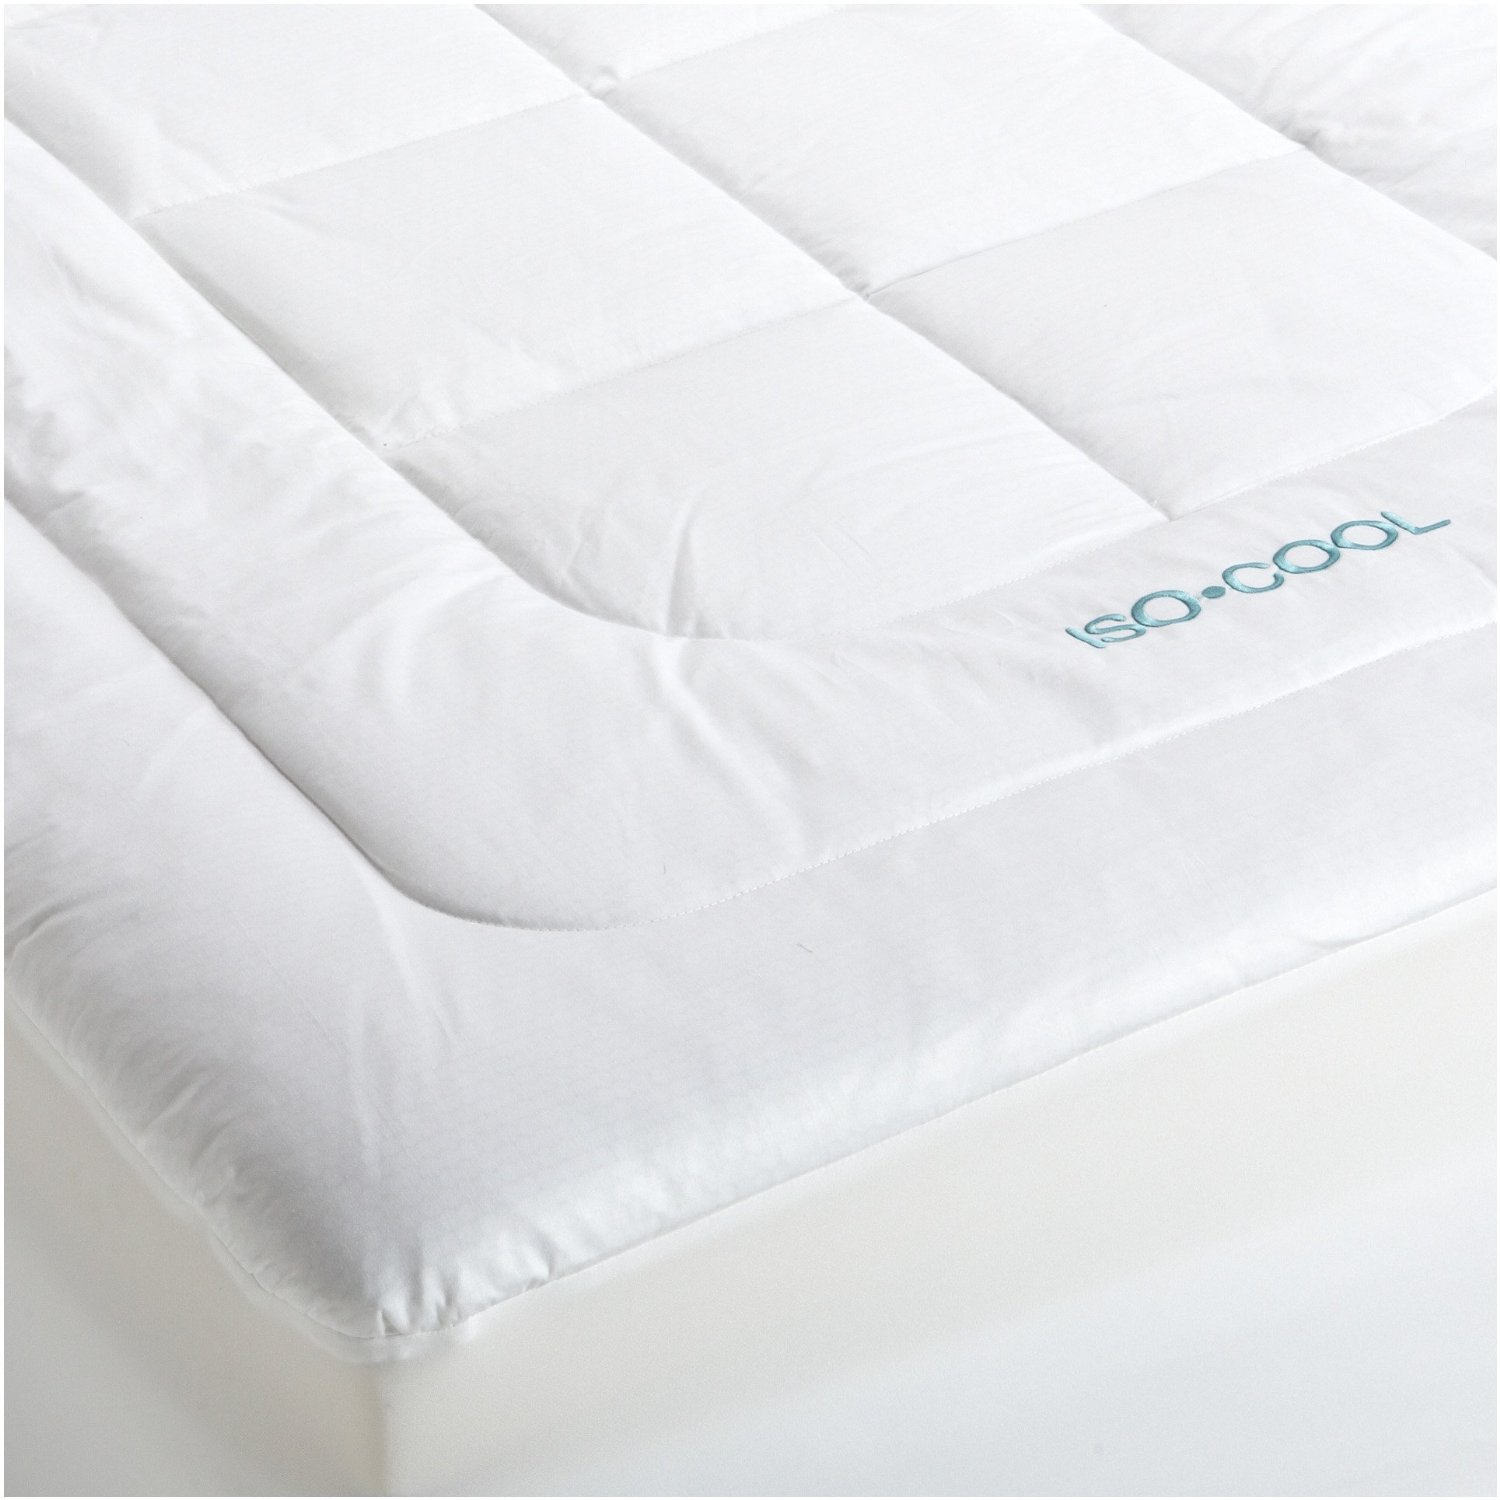 isocool memory foam mattress topper 3 in